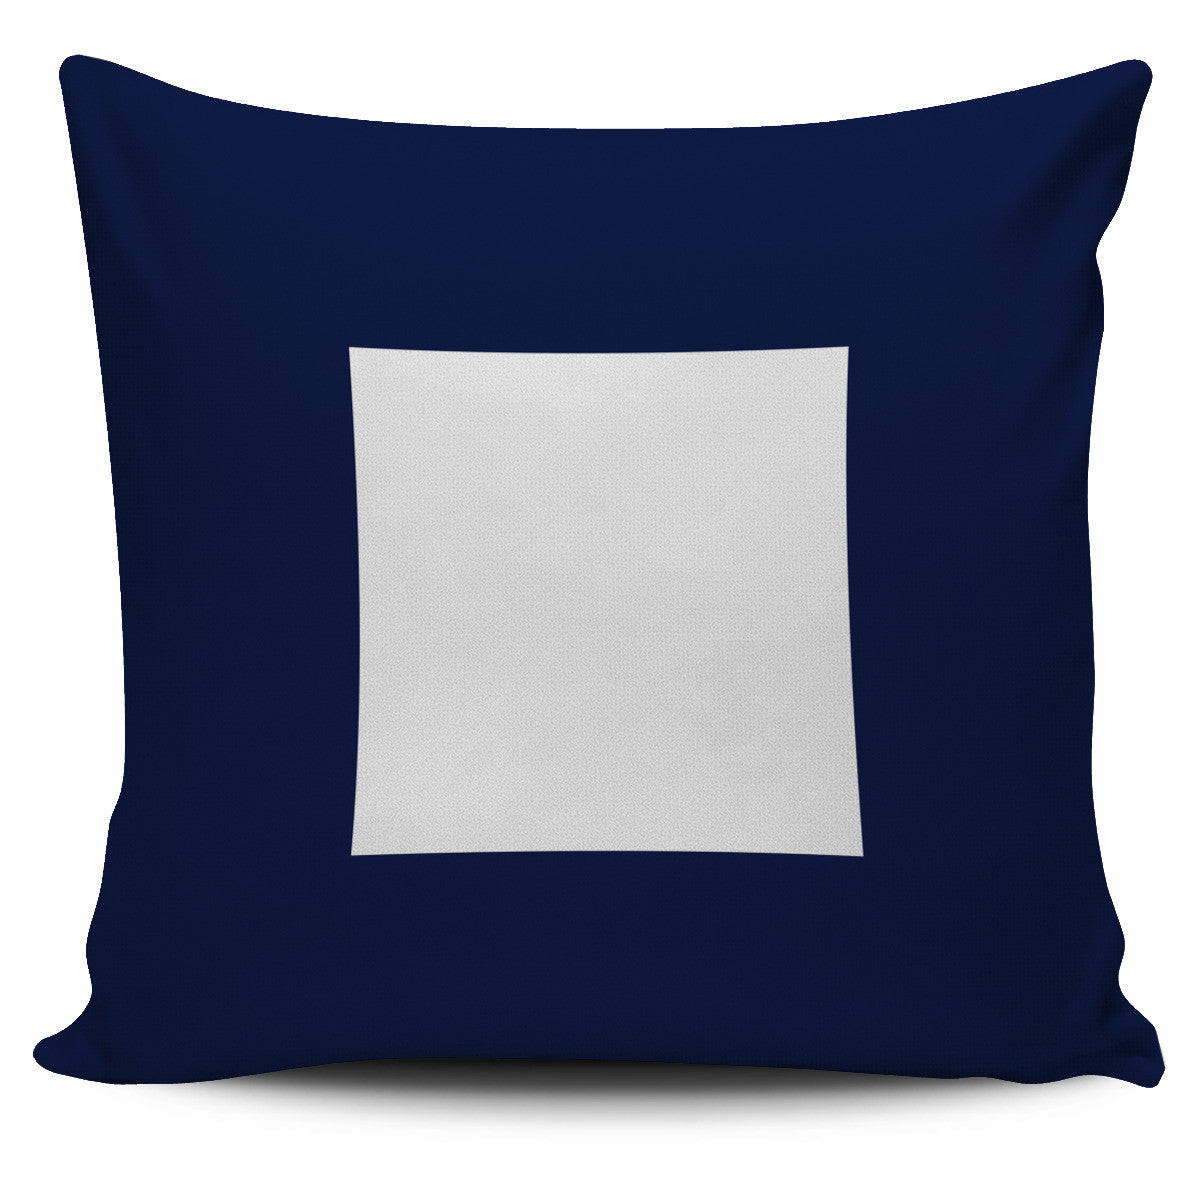 Letter P - Nautical Signal Flag Pillow Cover